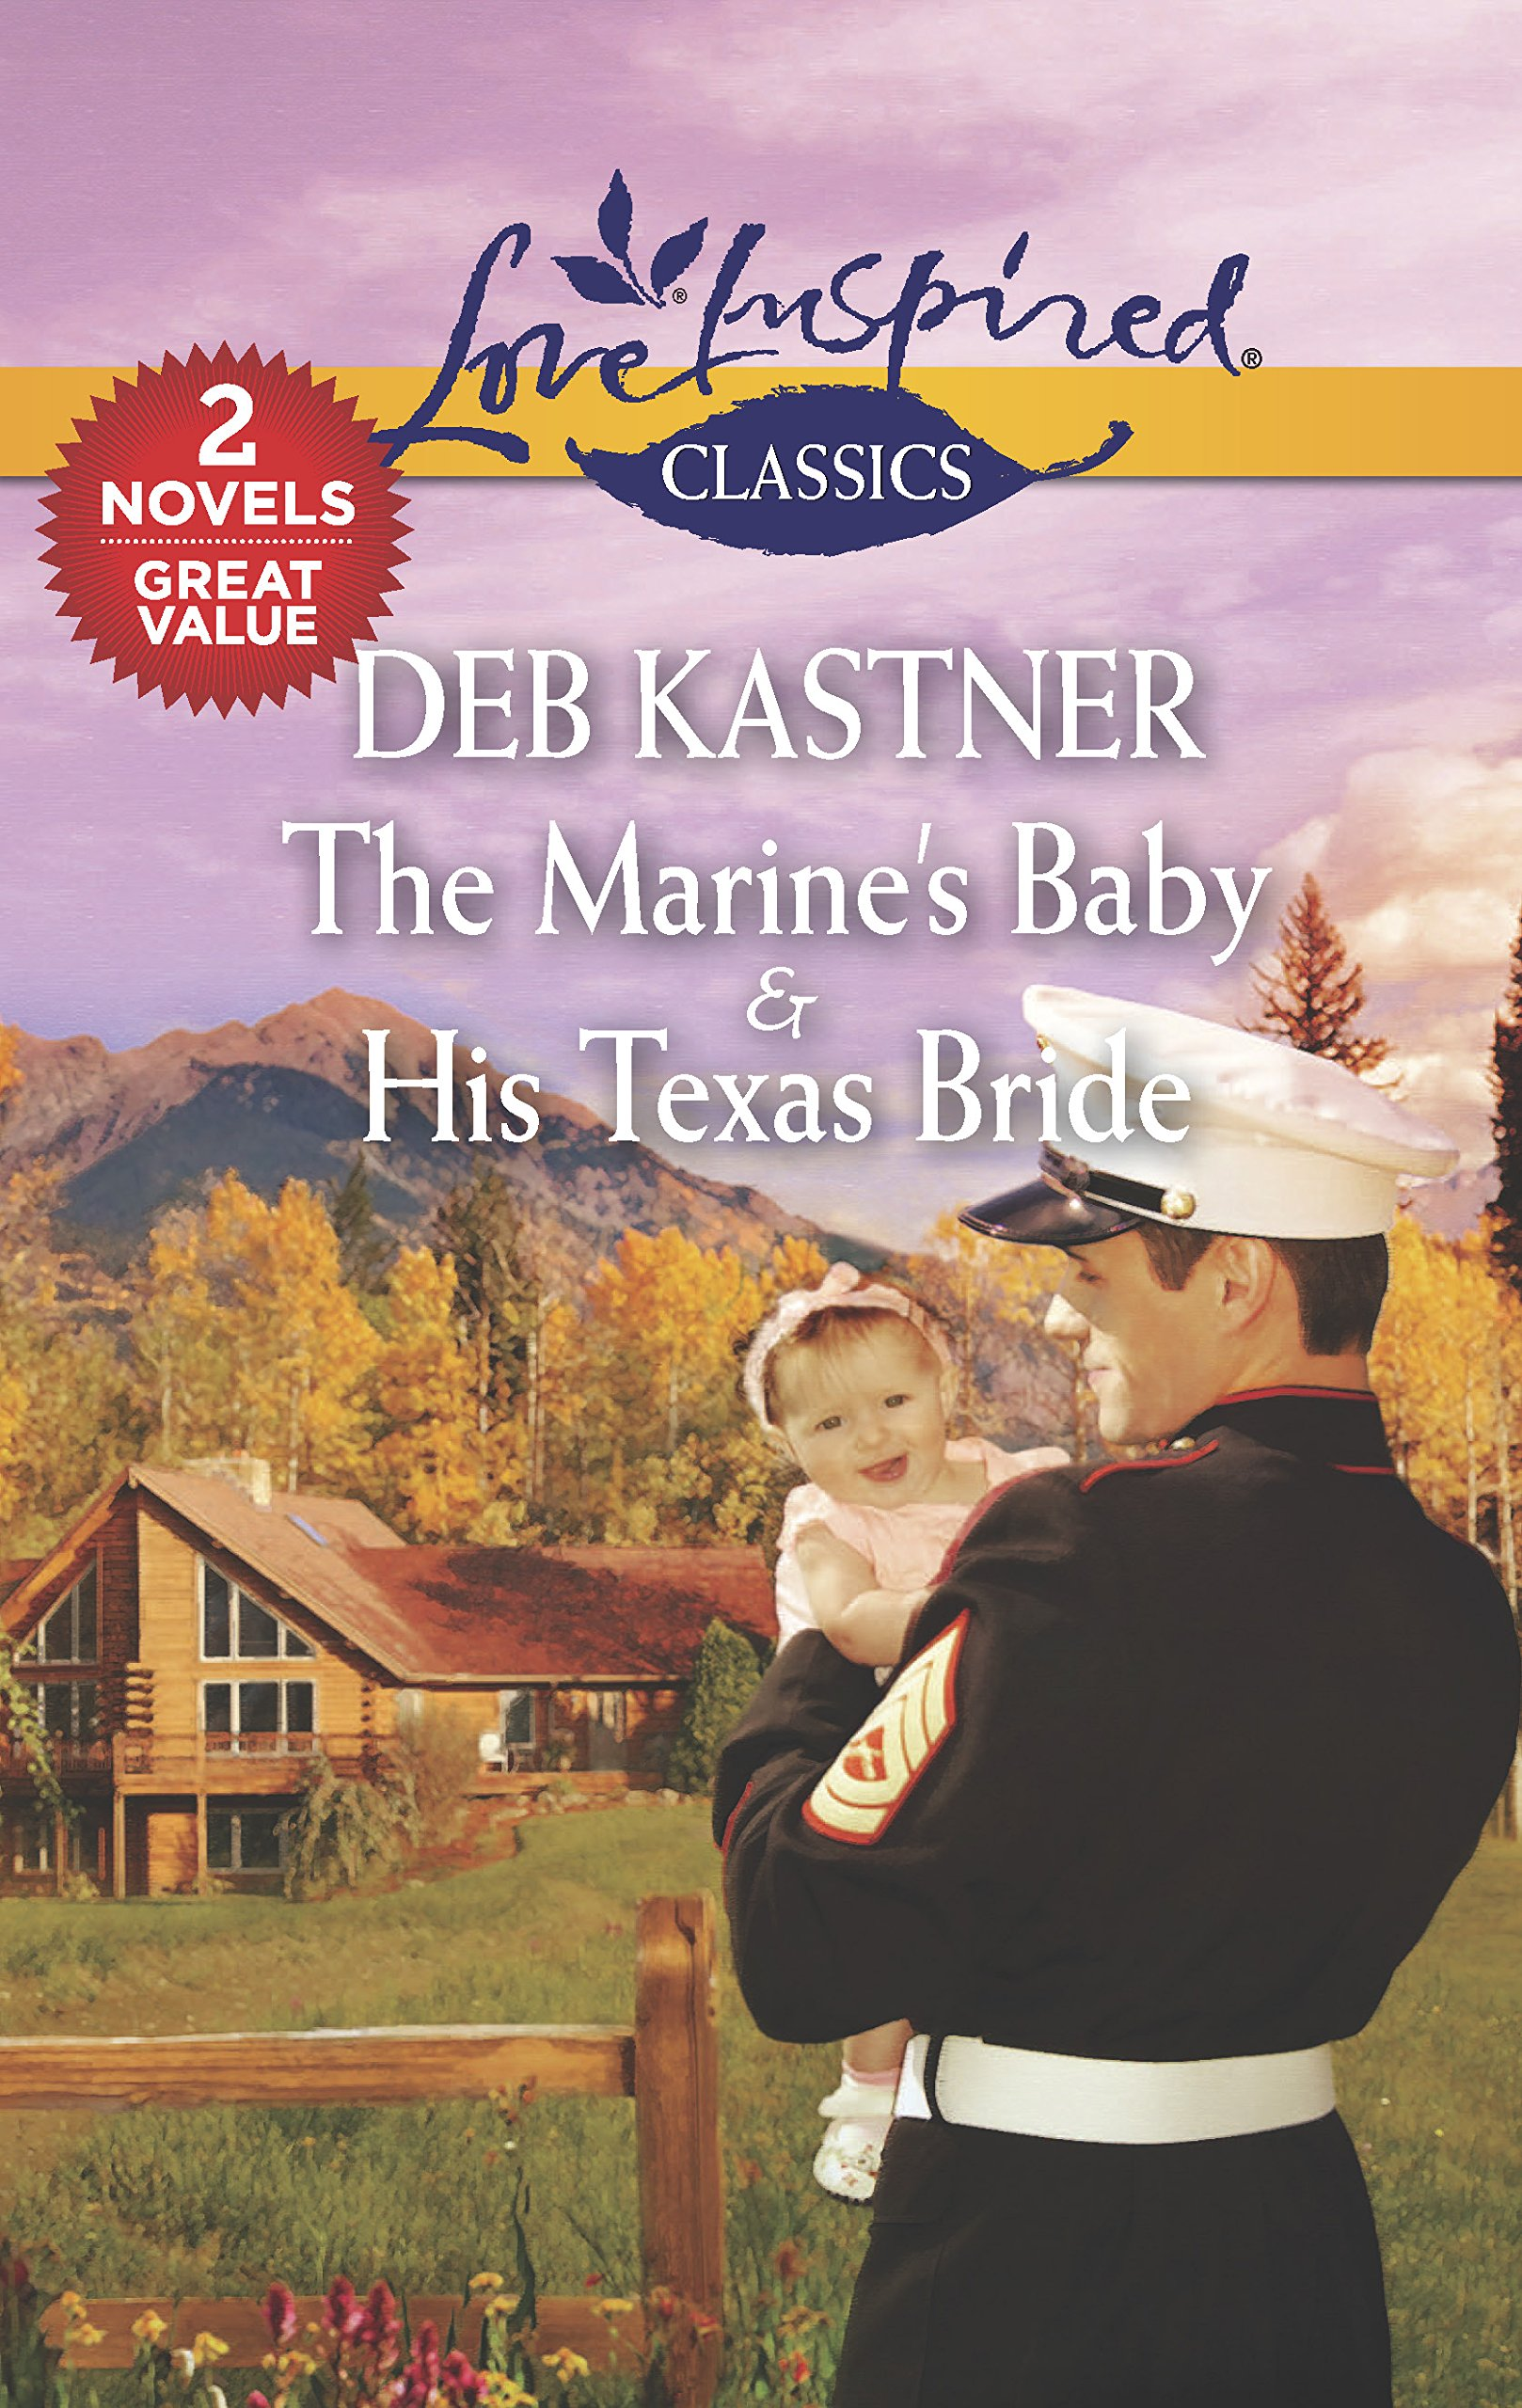 Read Online The Marine's Baby & His Texas Bride (Love Inspired Classics) PDF